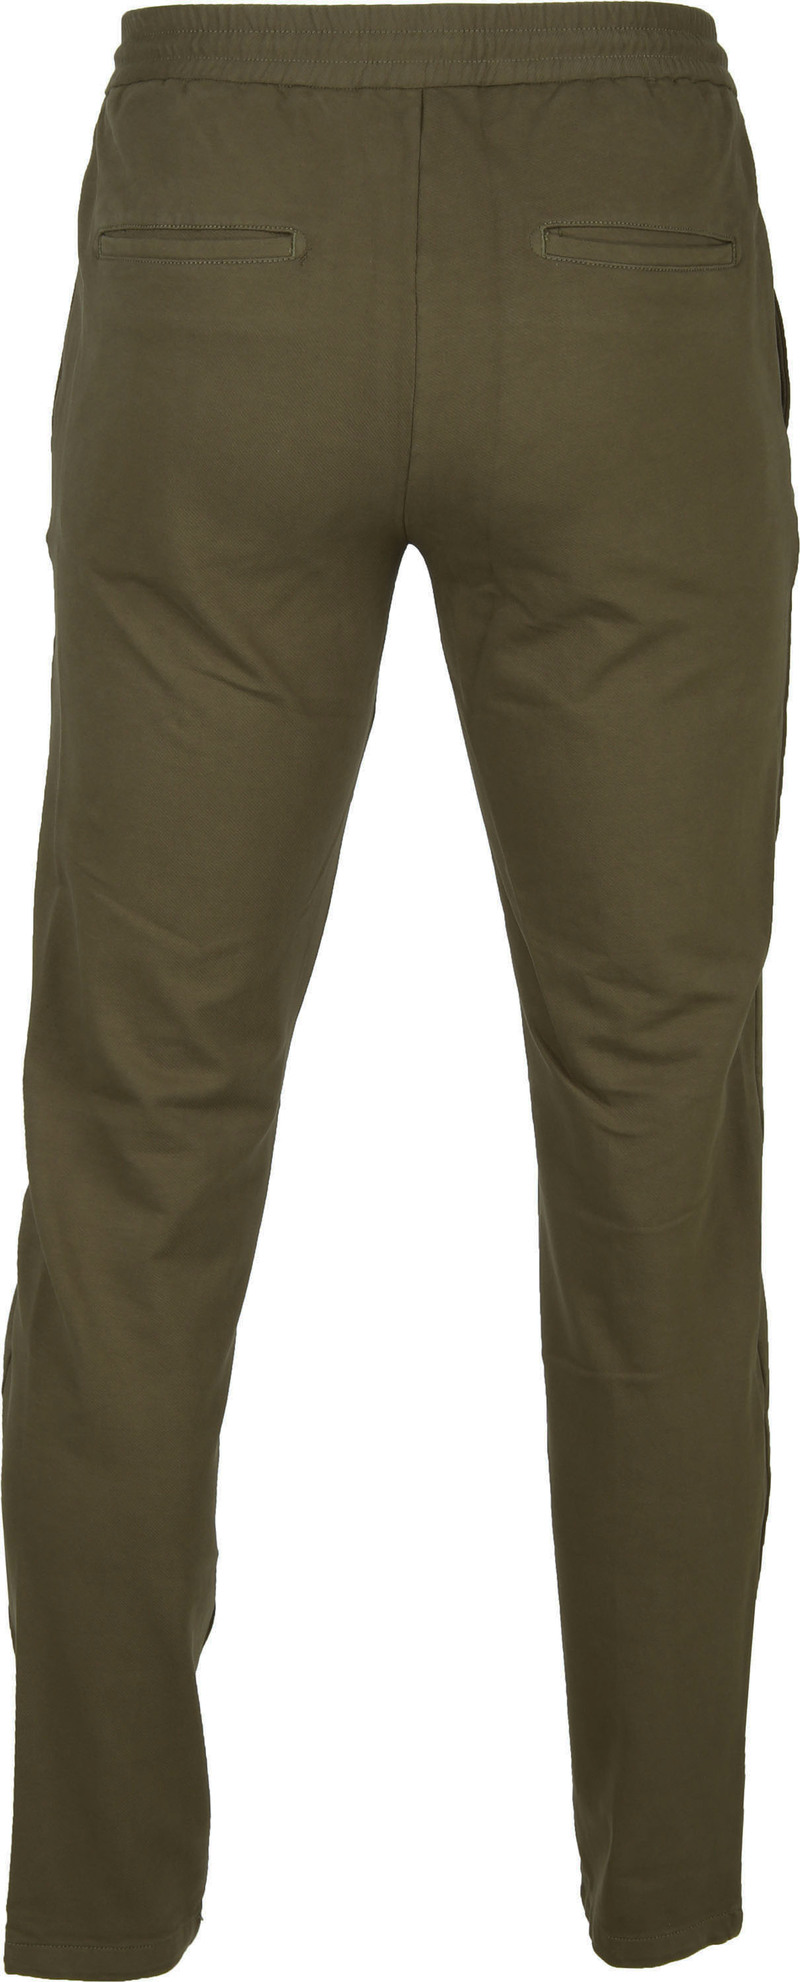 Suitable Pants Enrico Olive photo 3